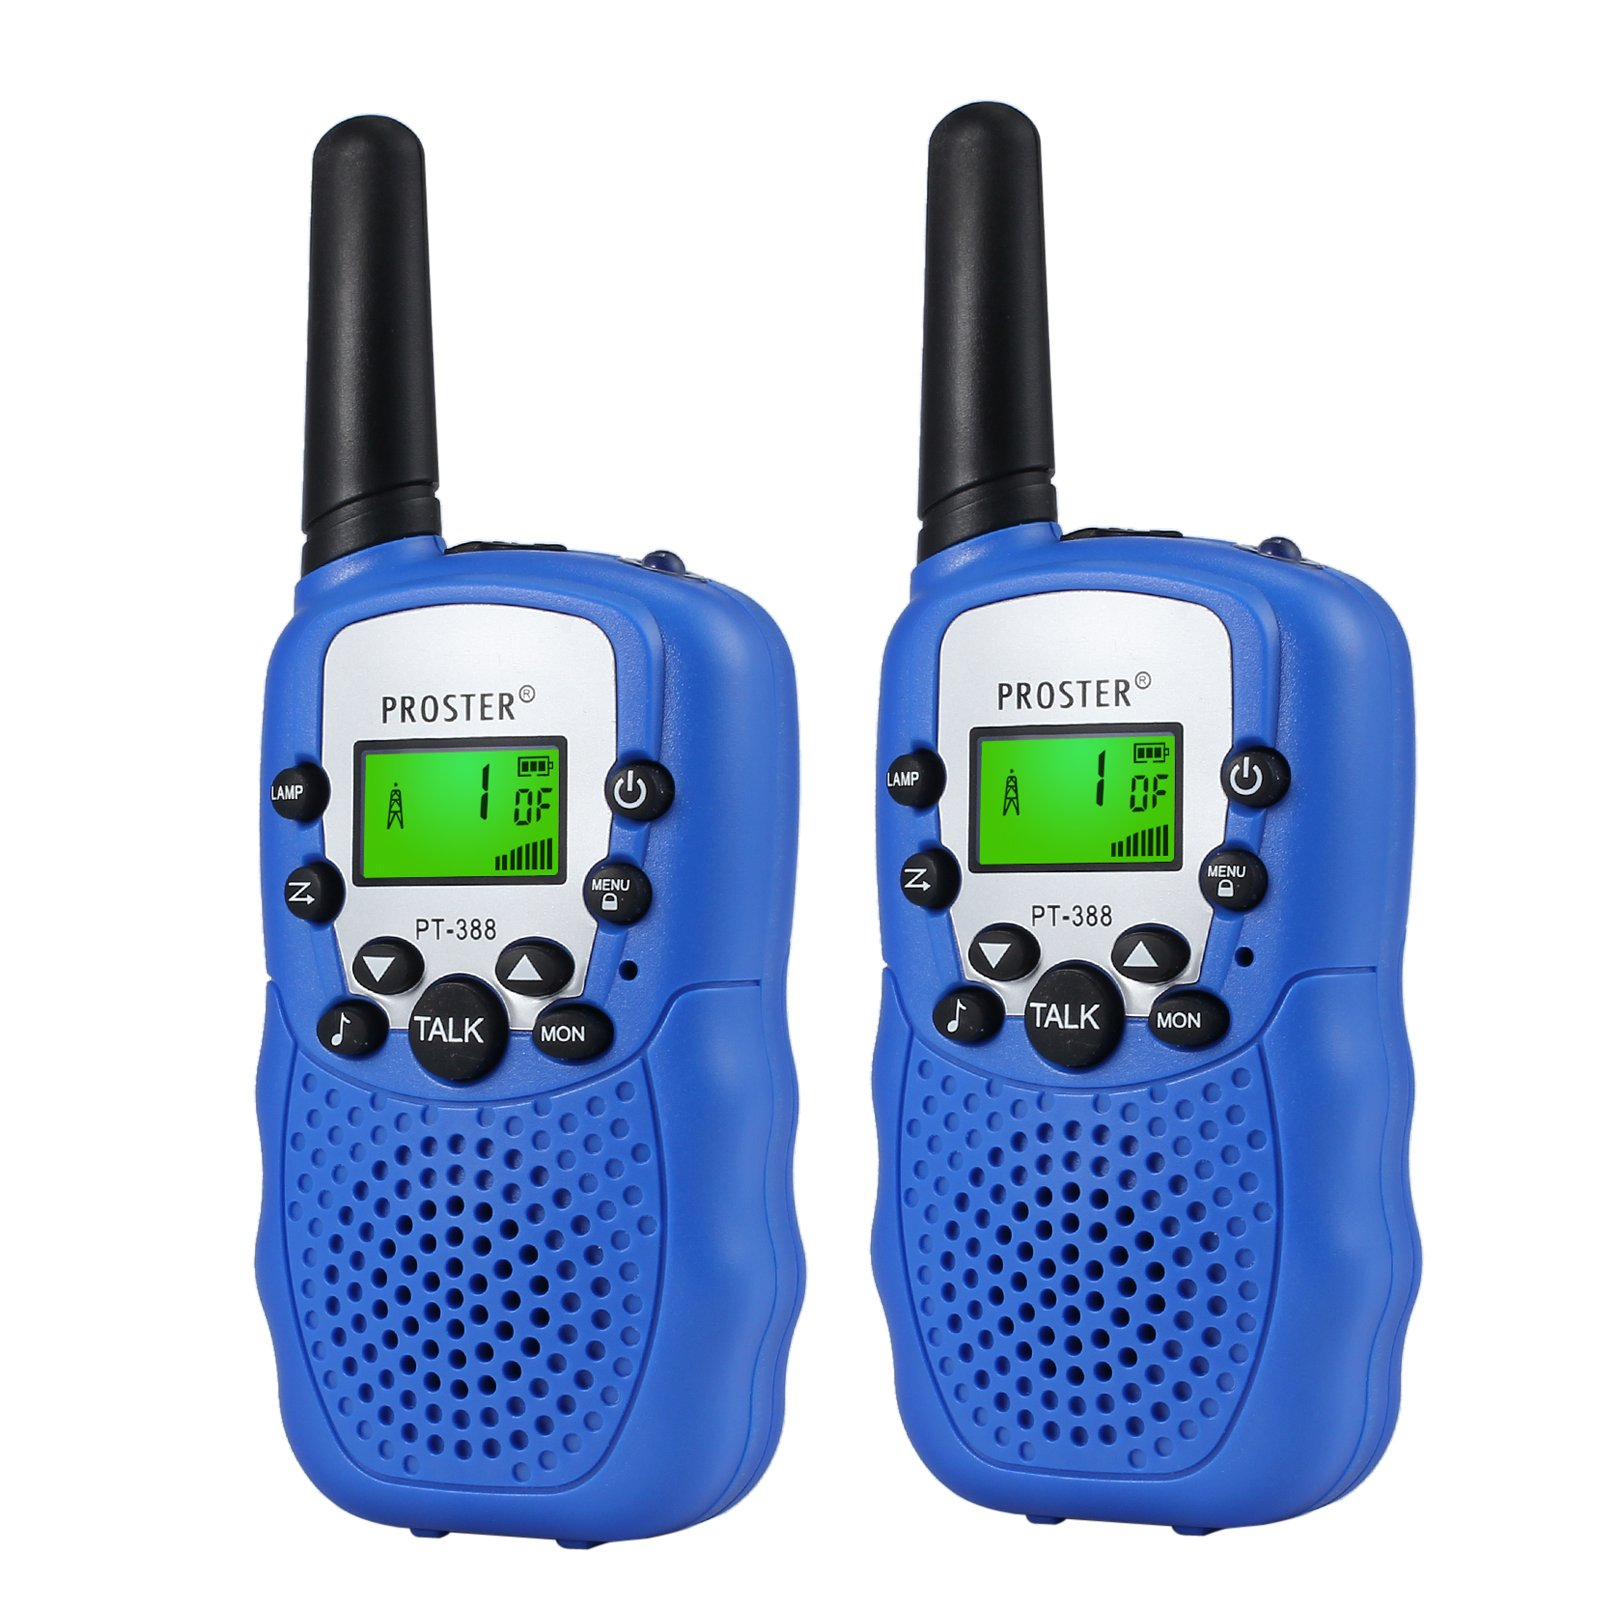 Proster Walkie Talkies LCD Kids Walky Talky UHF 446MHz 22 Channels Two Way Radios with LED Light on The Top Blue